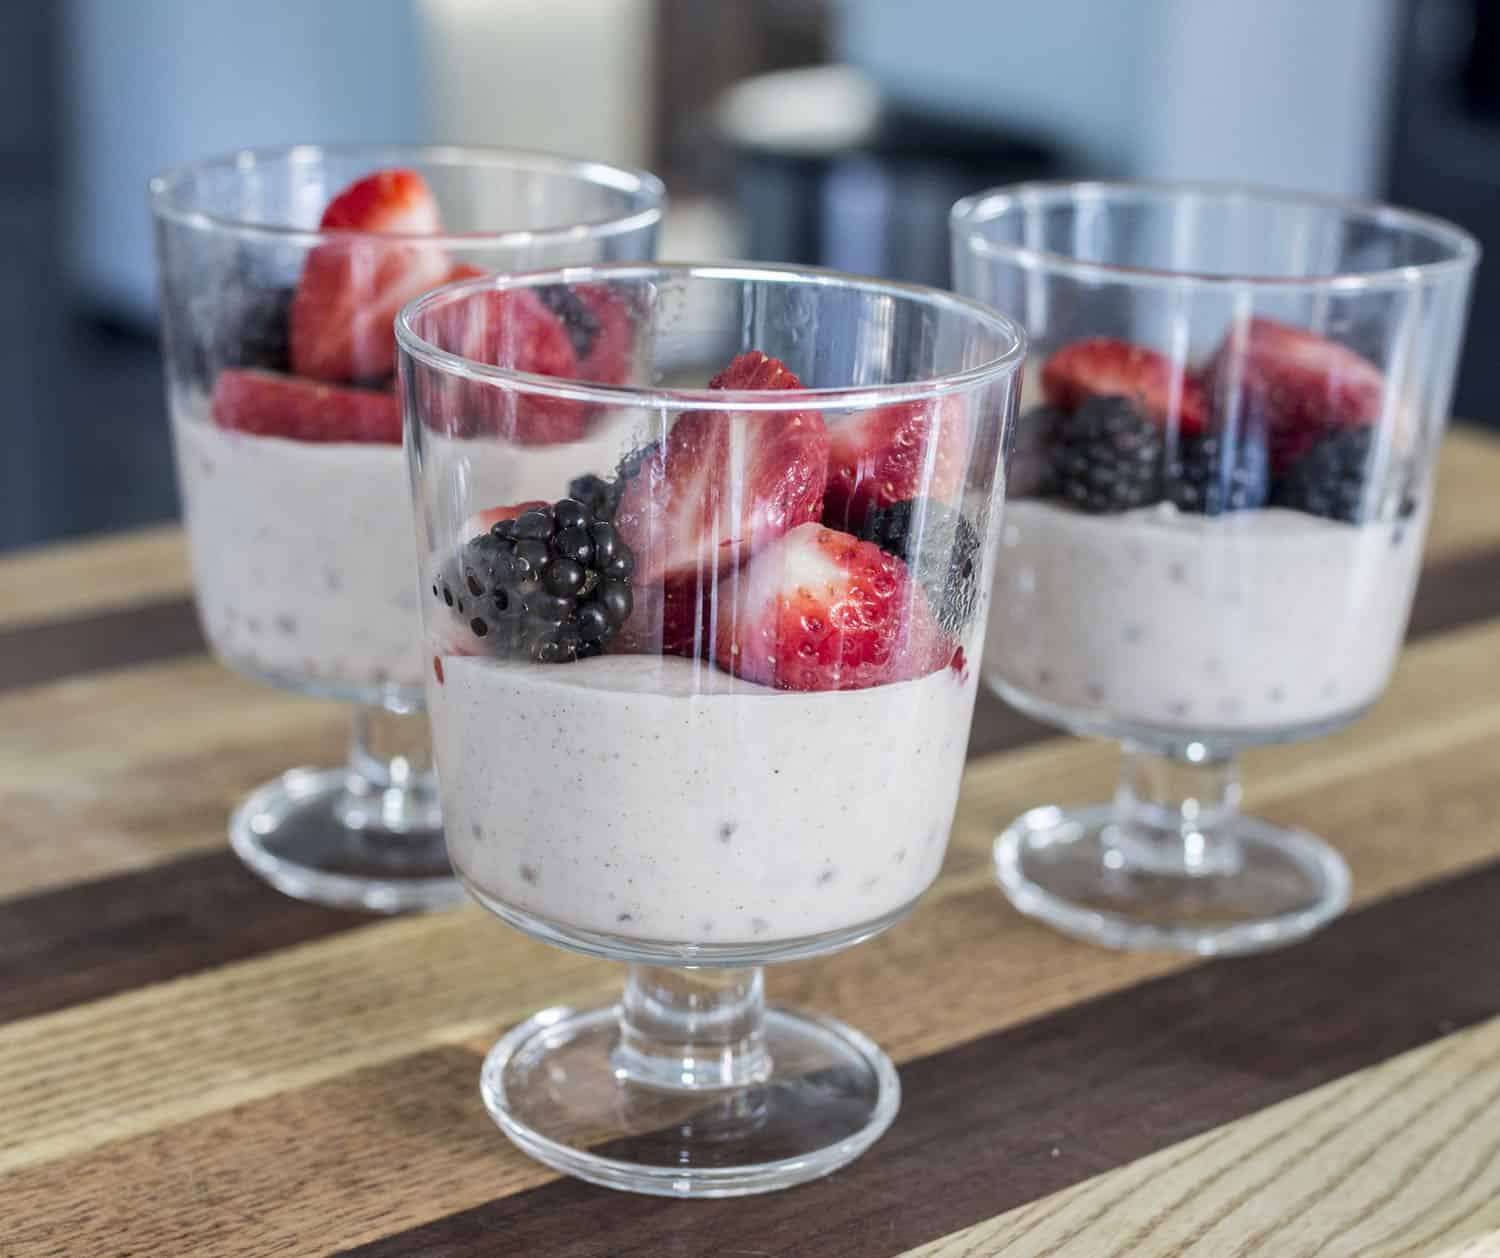 Tapioca with Berries